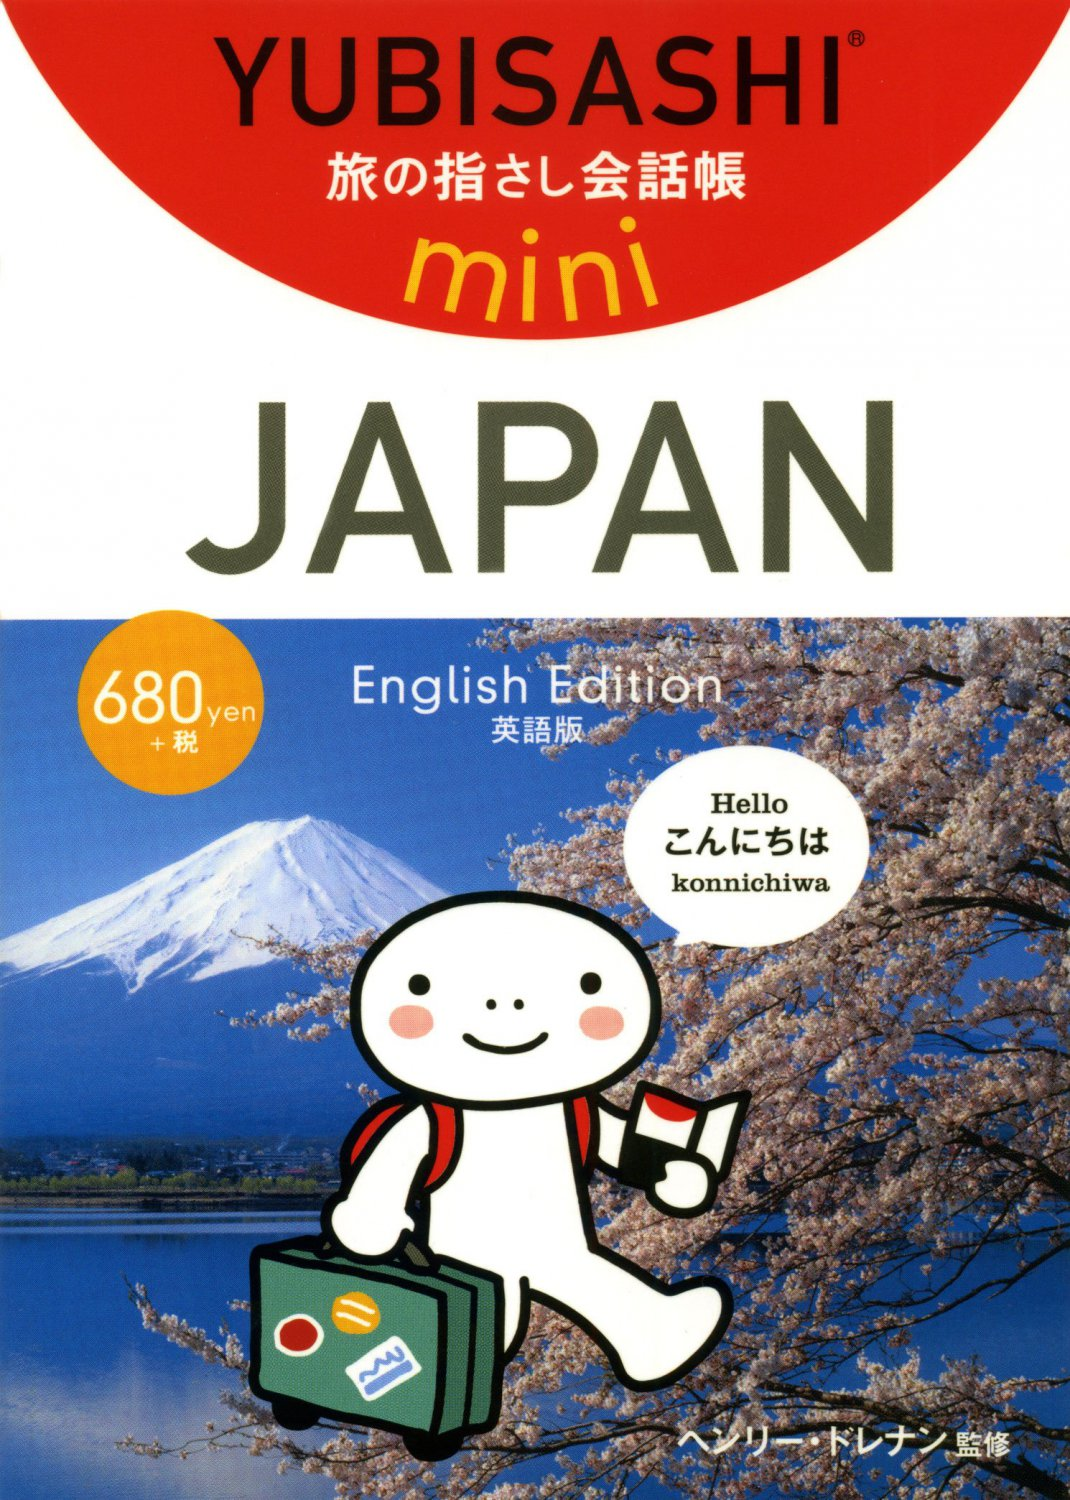 Yubisashi Japan Mini Point and Speak Travel Japanese Words and Phrase Book NEW